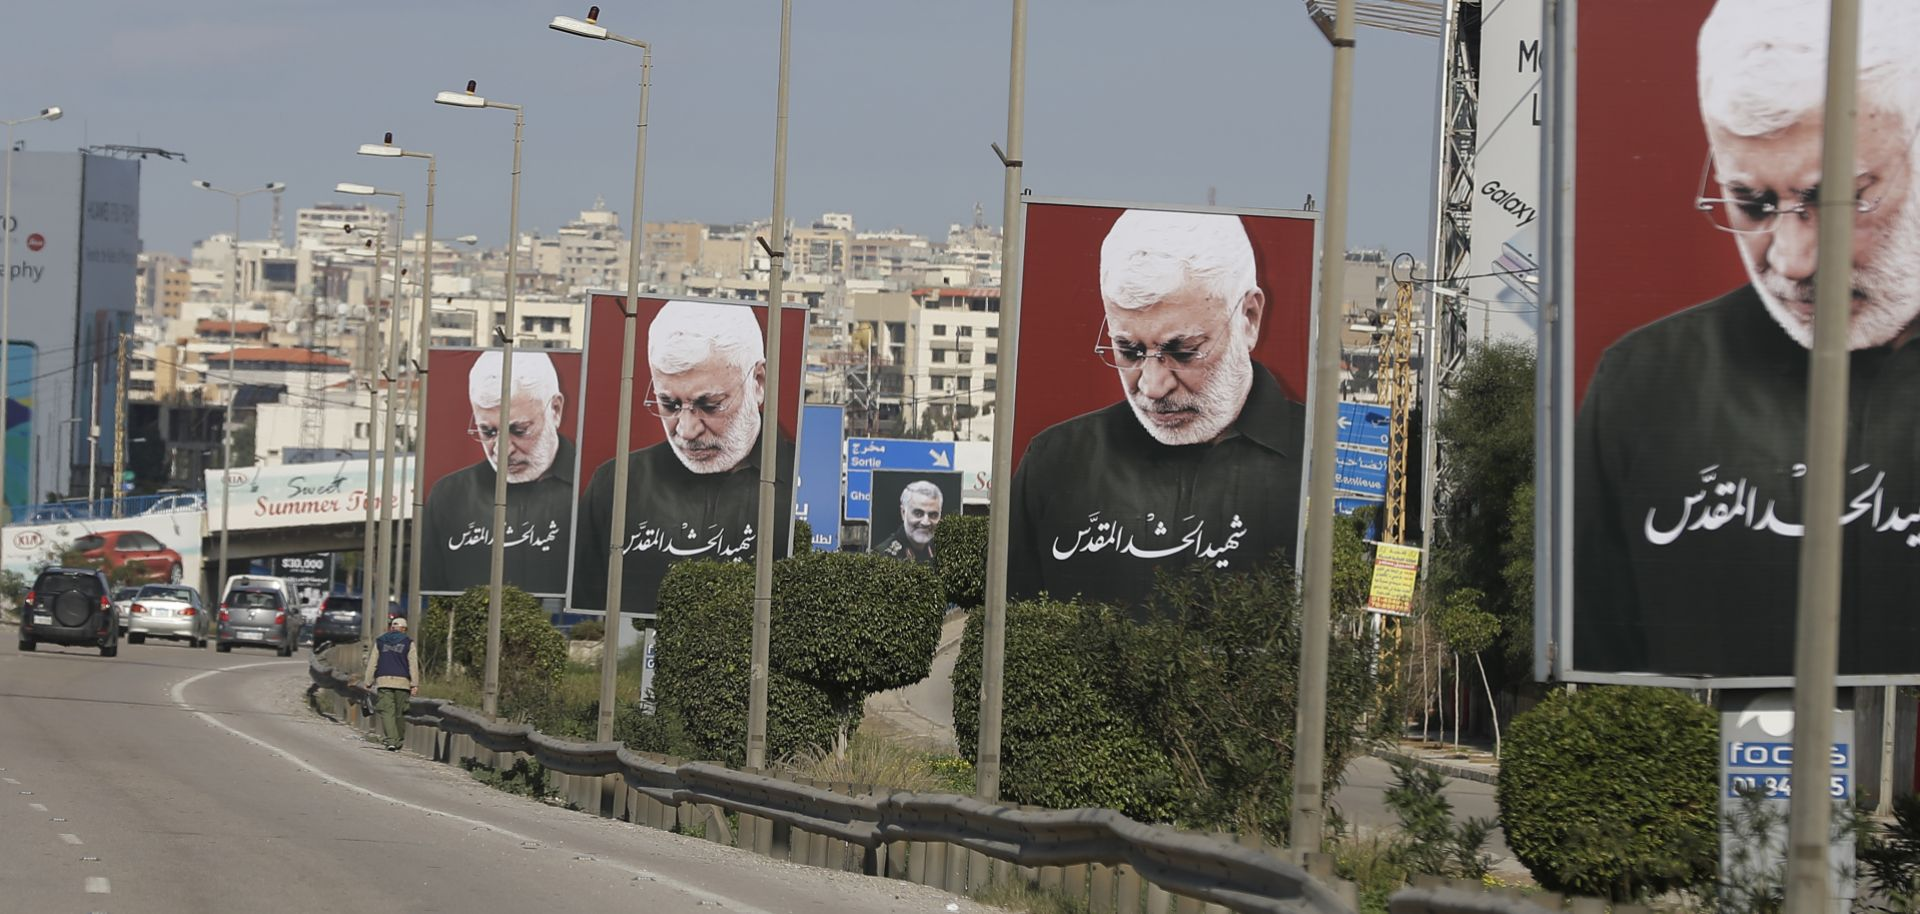 A picture taken on Jan. 11, 2020, shows portraits of Iraq's slain Popular Mobilization Unit deputy chief Abu Mahdi al-Muhandis, the late founder of Kataib Hezbollah, on the southern exit of the Lebanese capital Beirut.